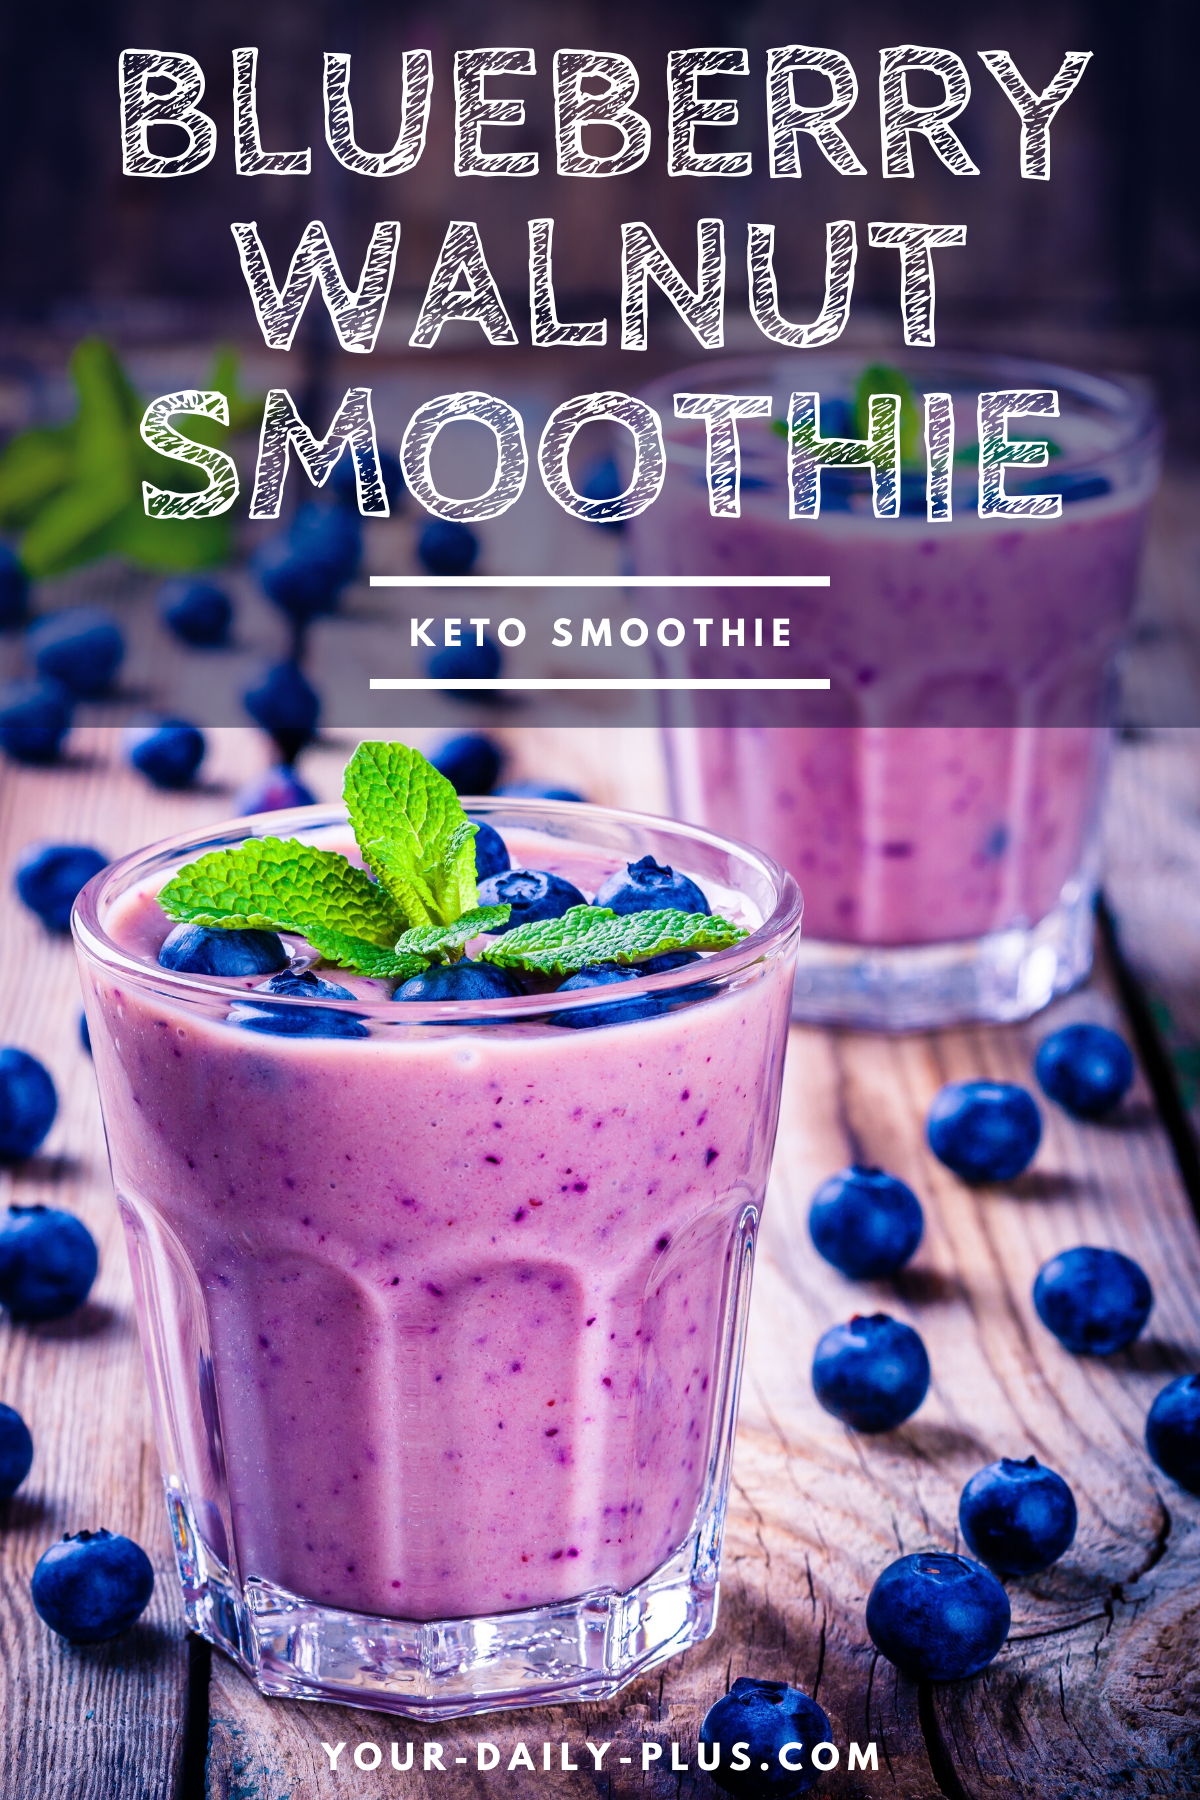 We've all surely heard of the magical anti-oxidant benefits of blueberries and so enjoying them first thing in the morning is a great way to start your waking mind. #smoothies #ketodiet #lowcarbdiet #ketogenic